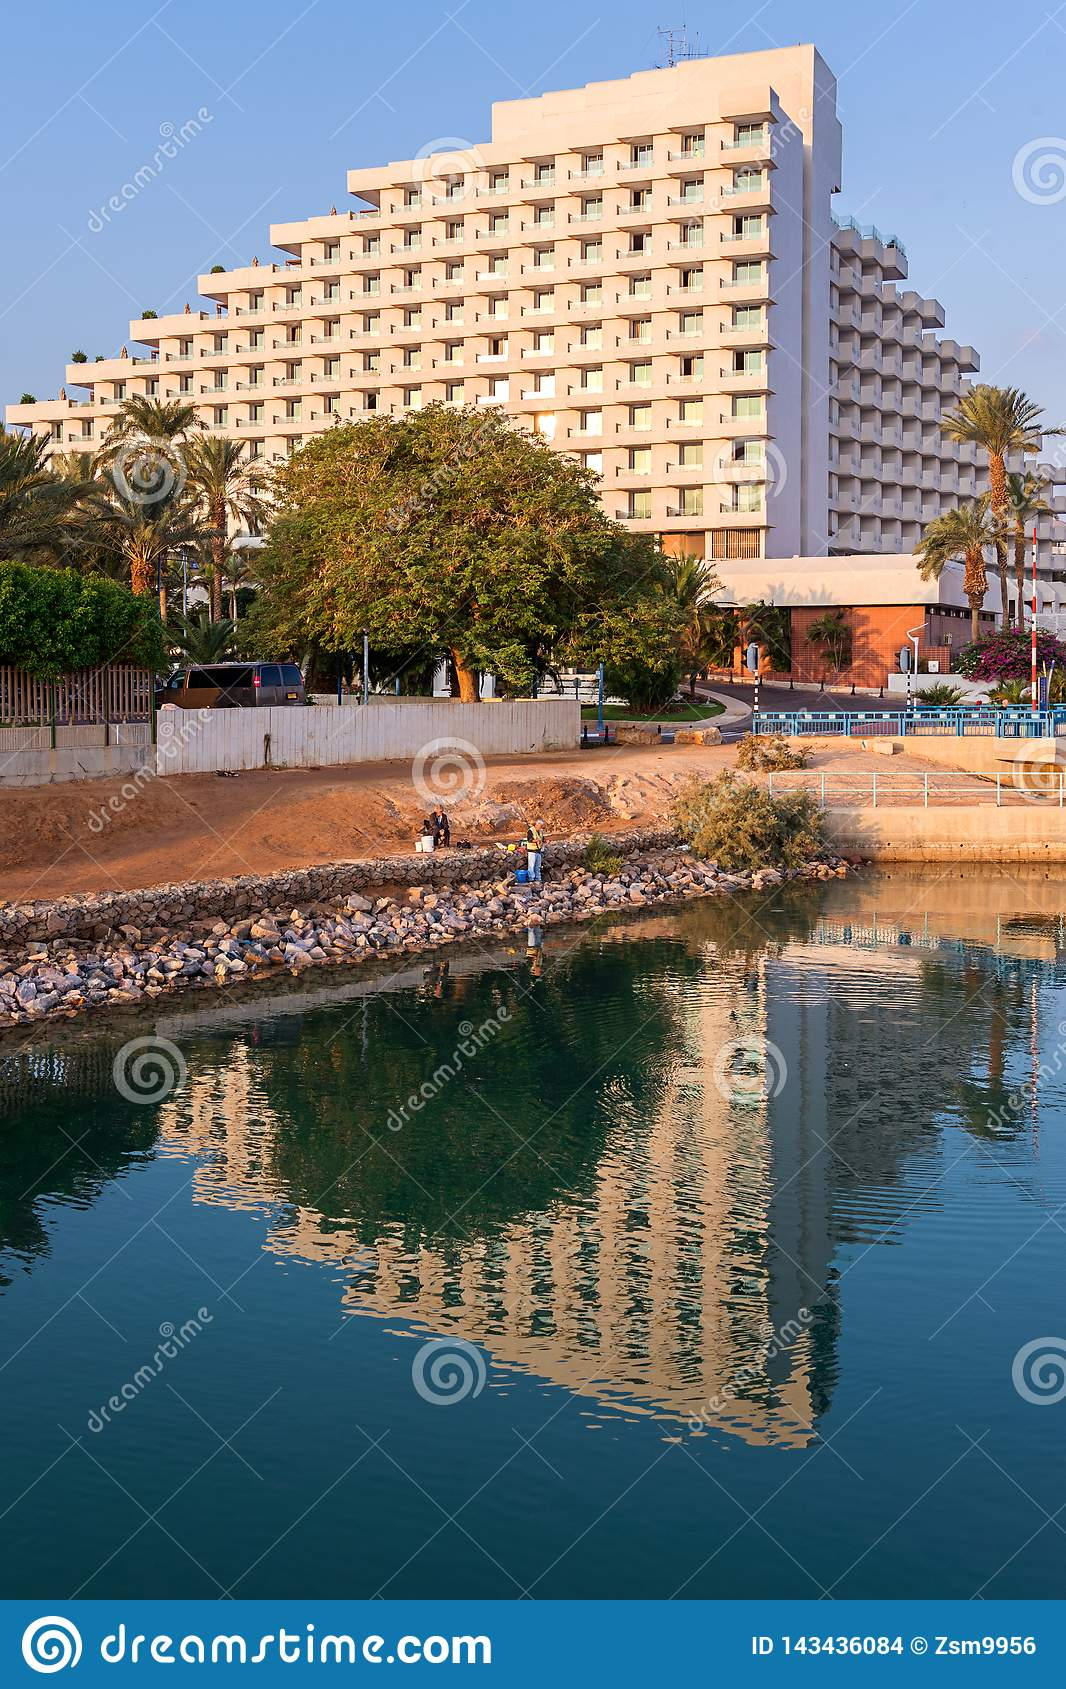 The Red sea, Eilat, fishing